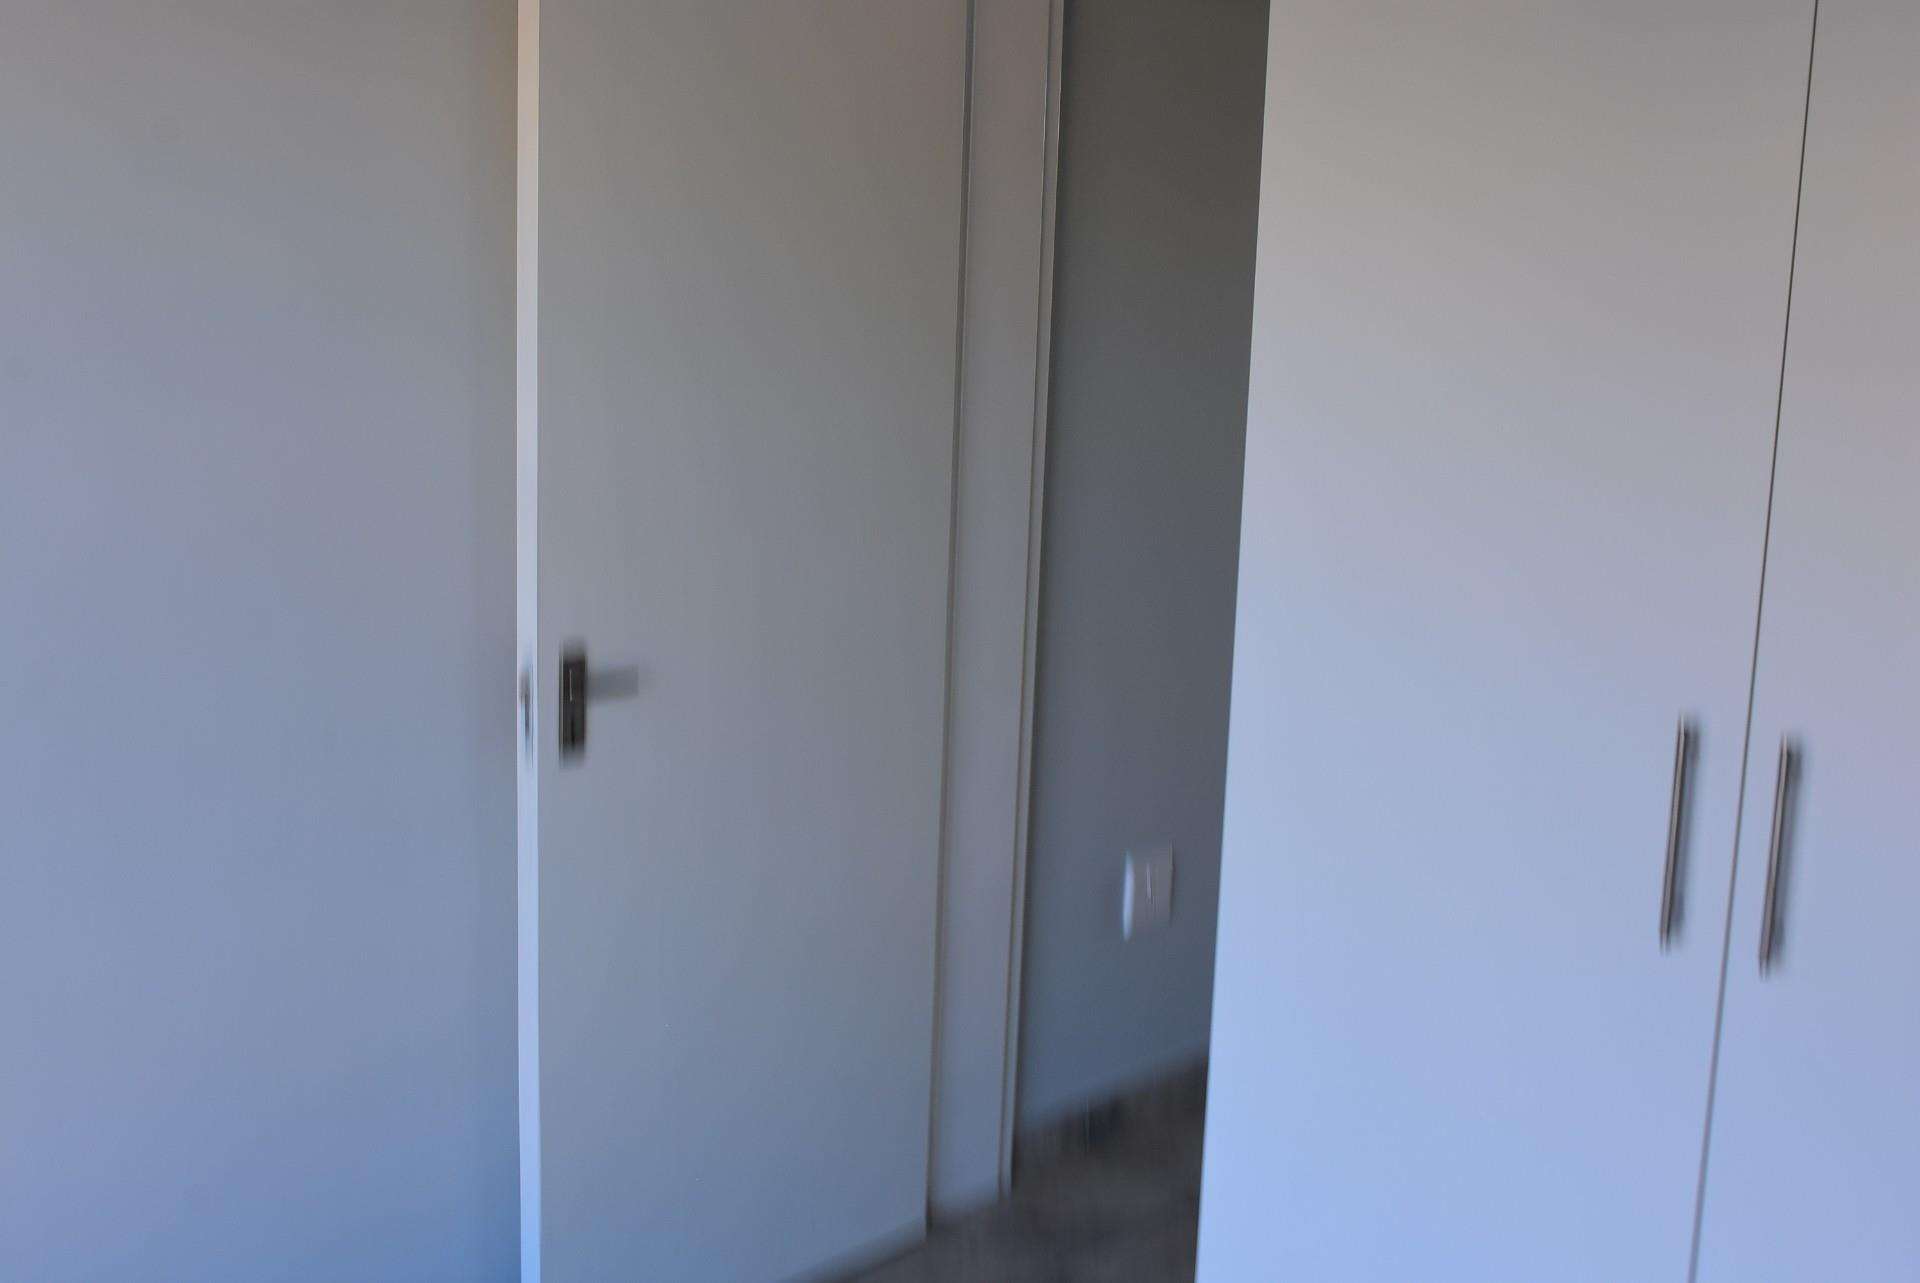 3 Bedroom Town house To Rent in Kleine Kuppe